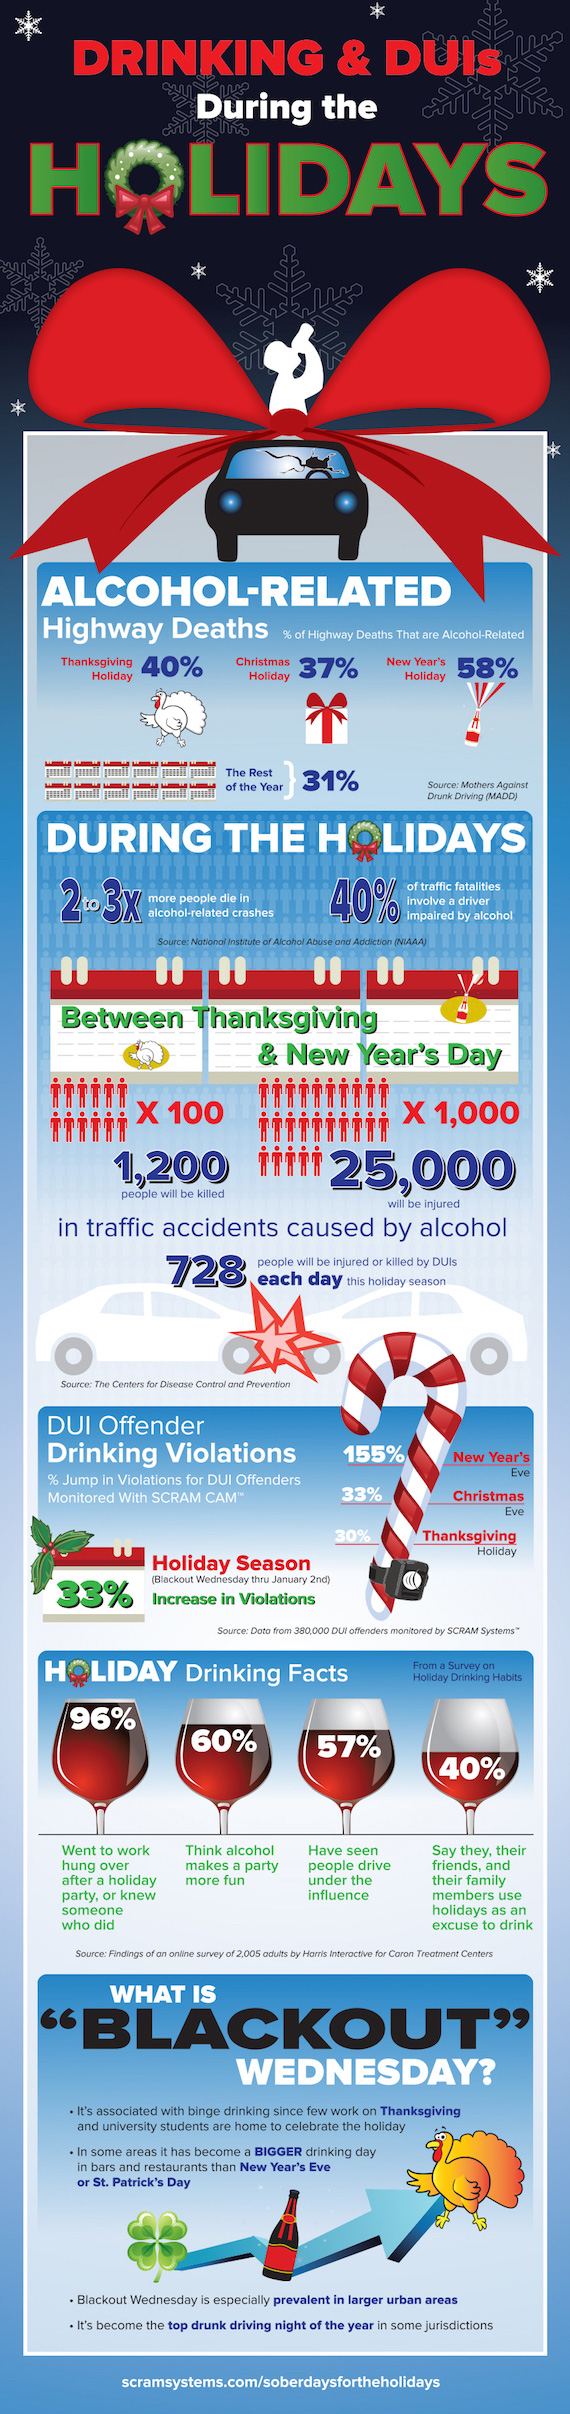 Infographic: Holiday Drinking & DUIs